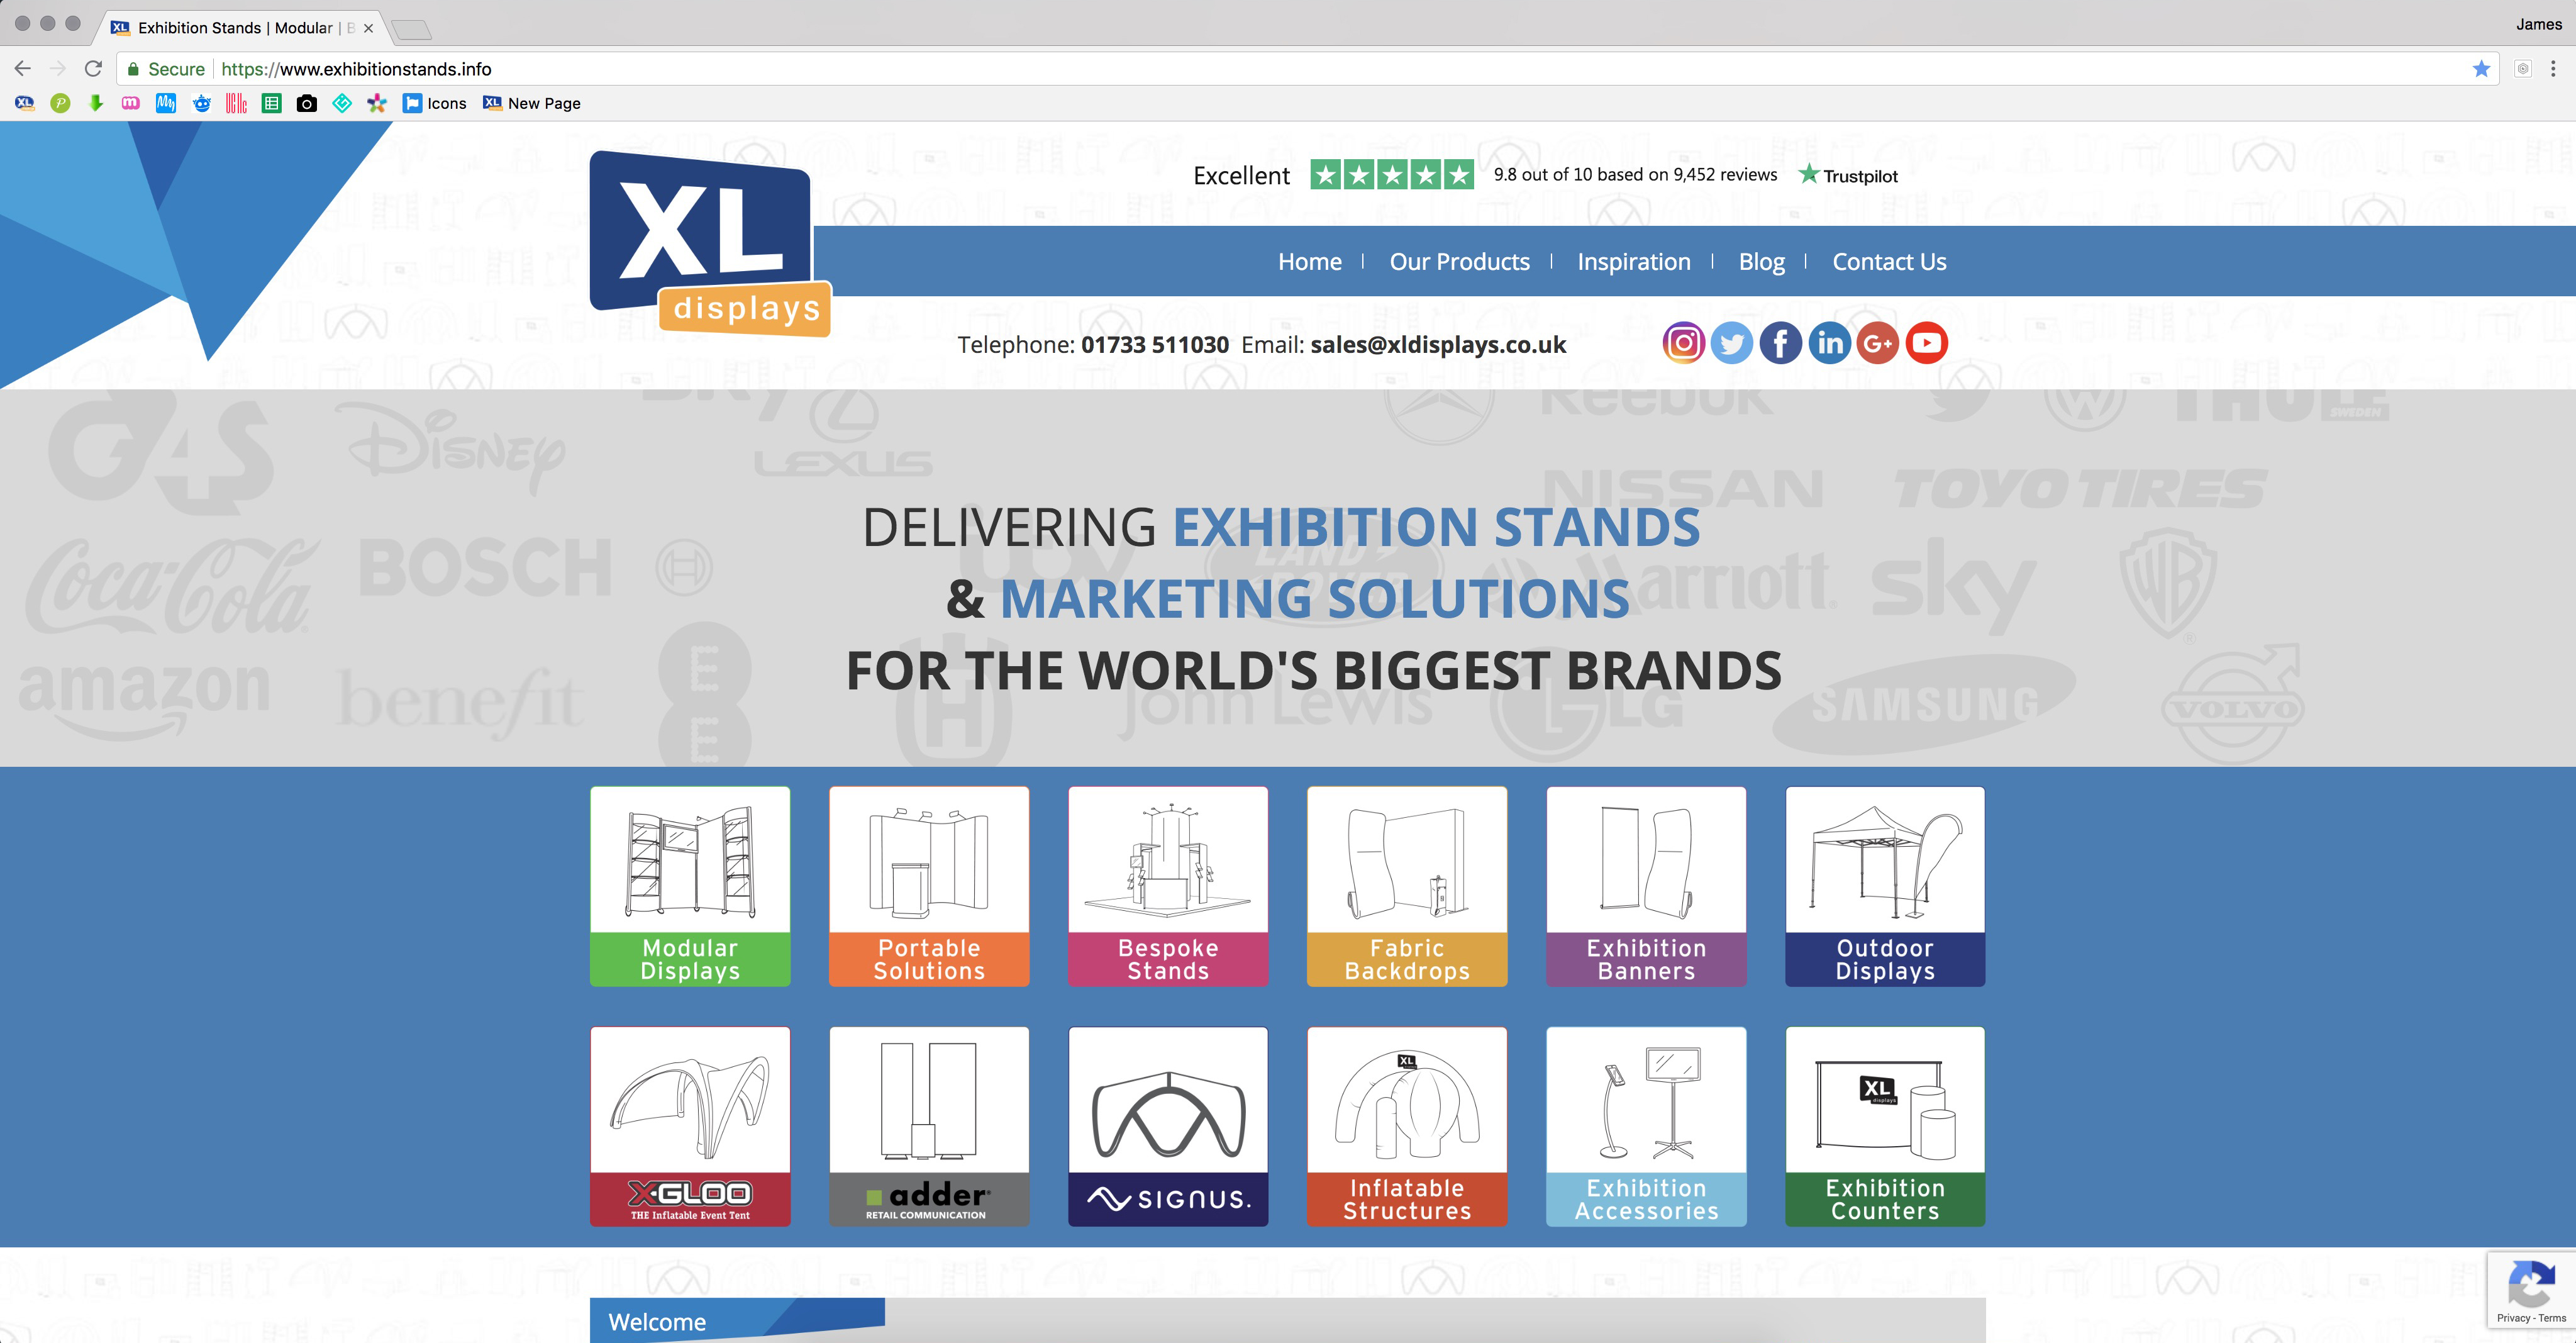 Exhibition Stands Information Website - XL Displays